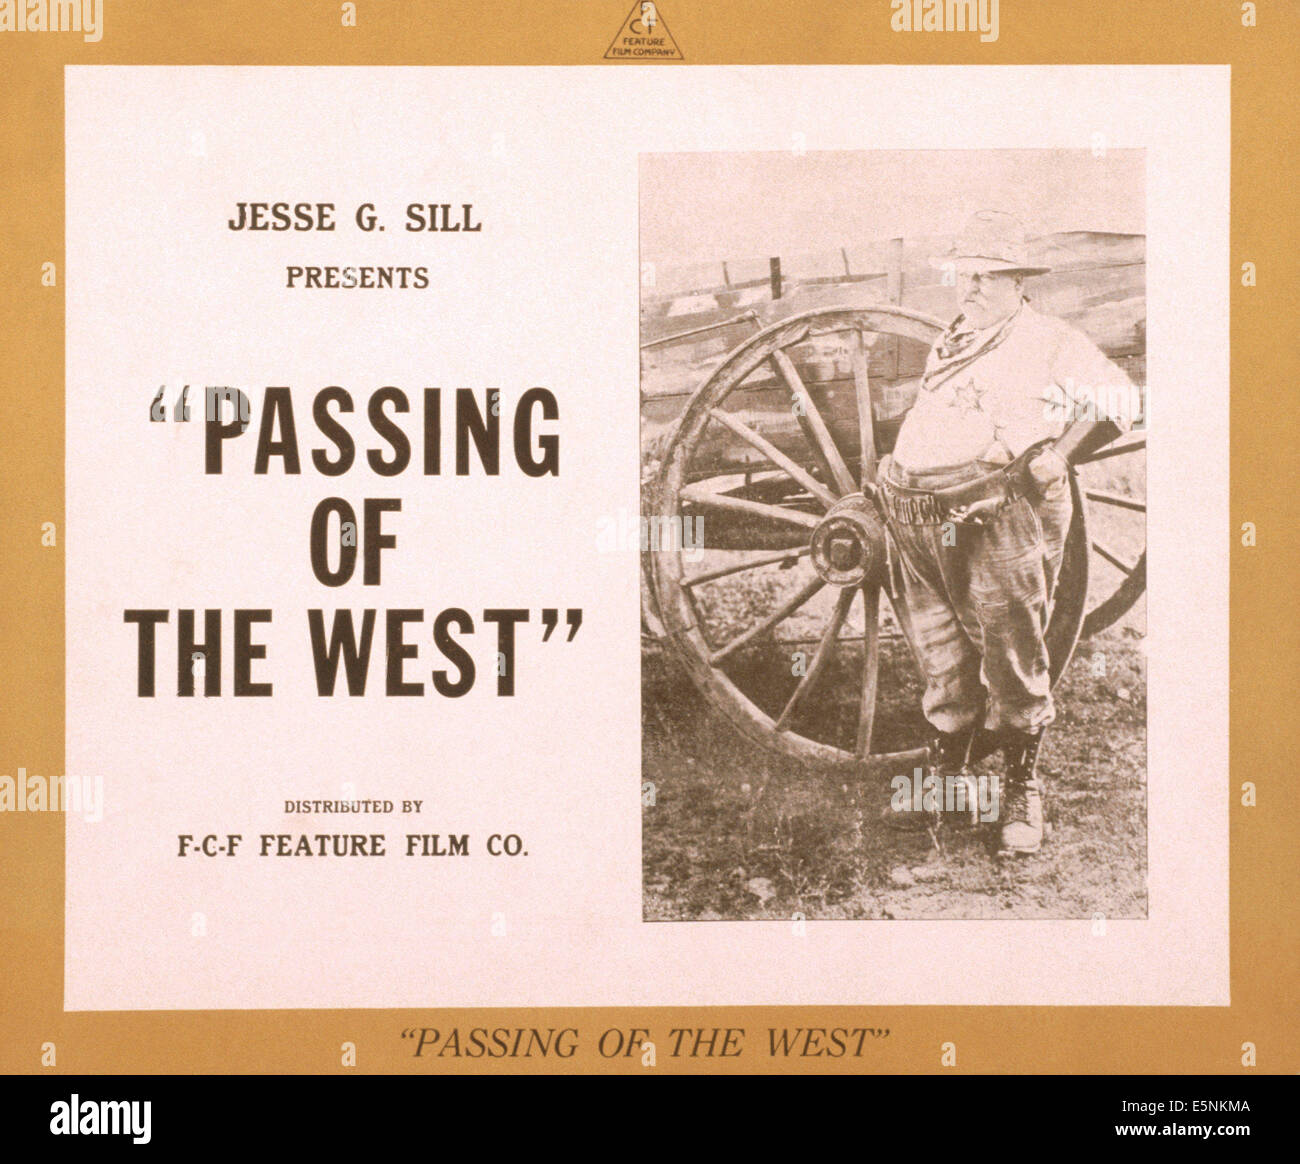 PASSING OF THE WEST, US lobbycard, 1910s - Stock Image